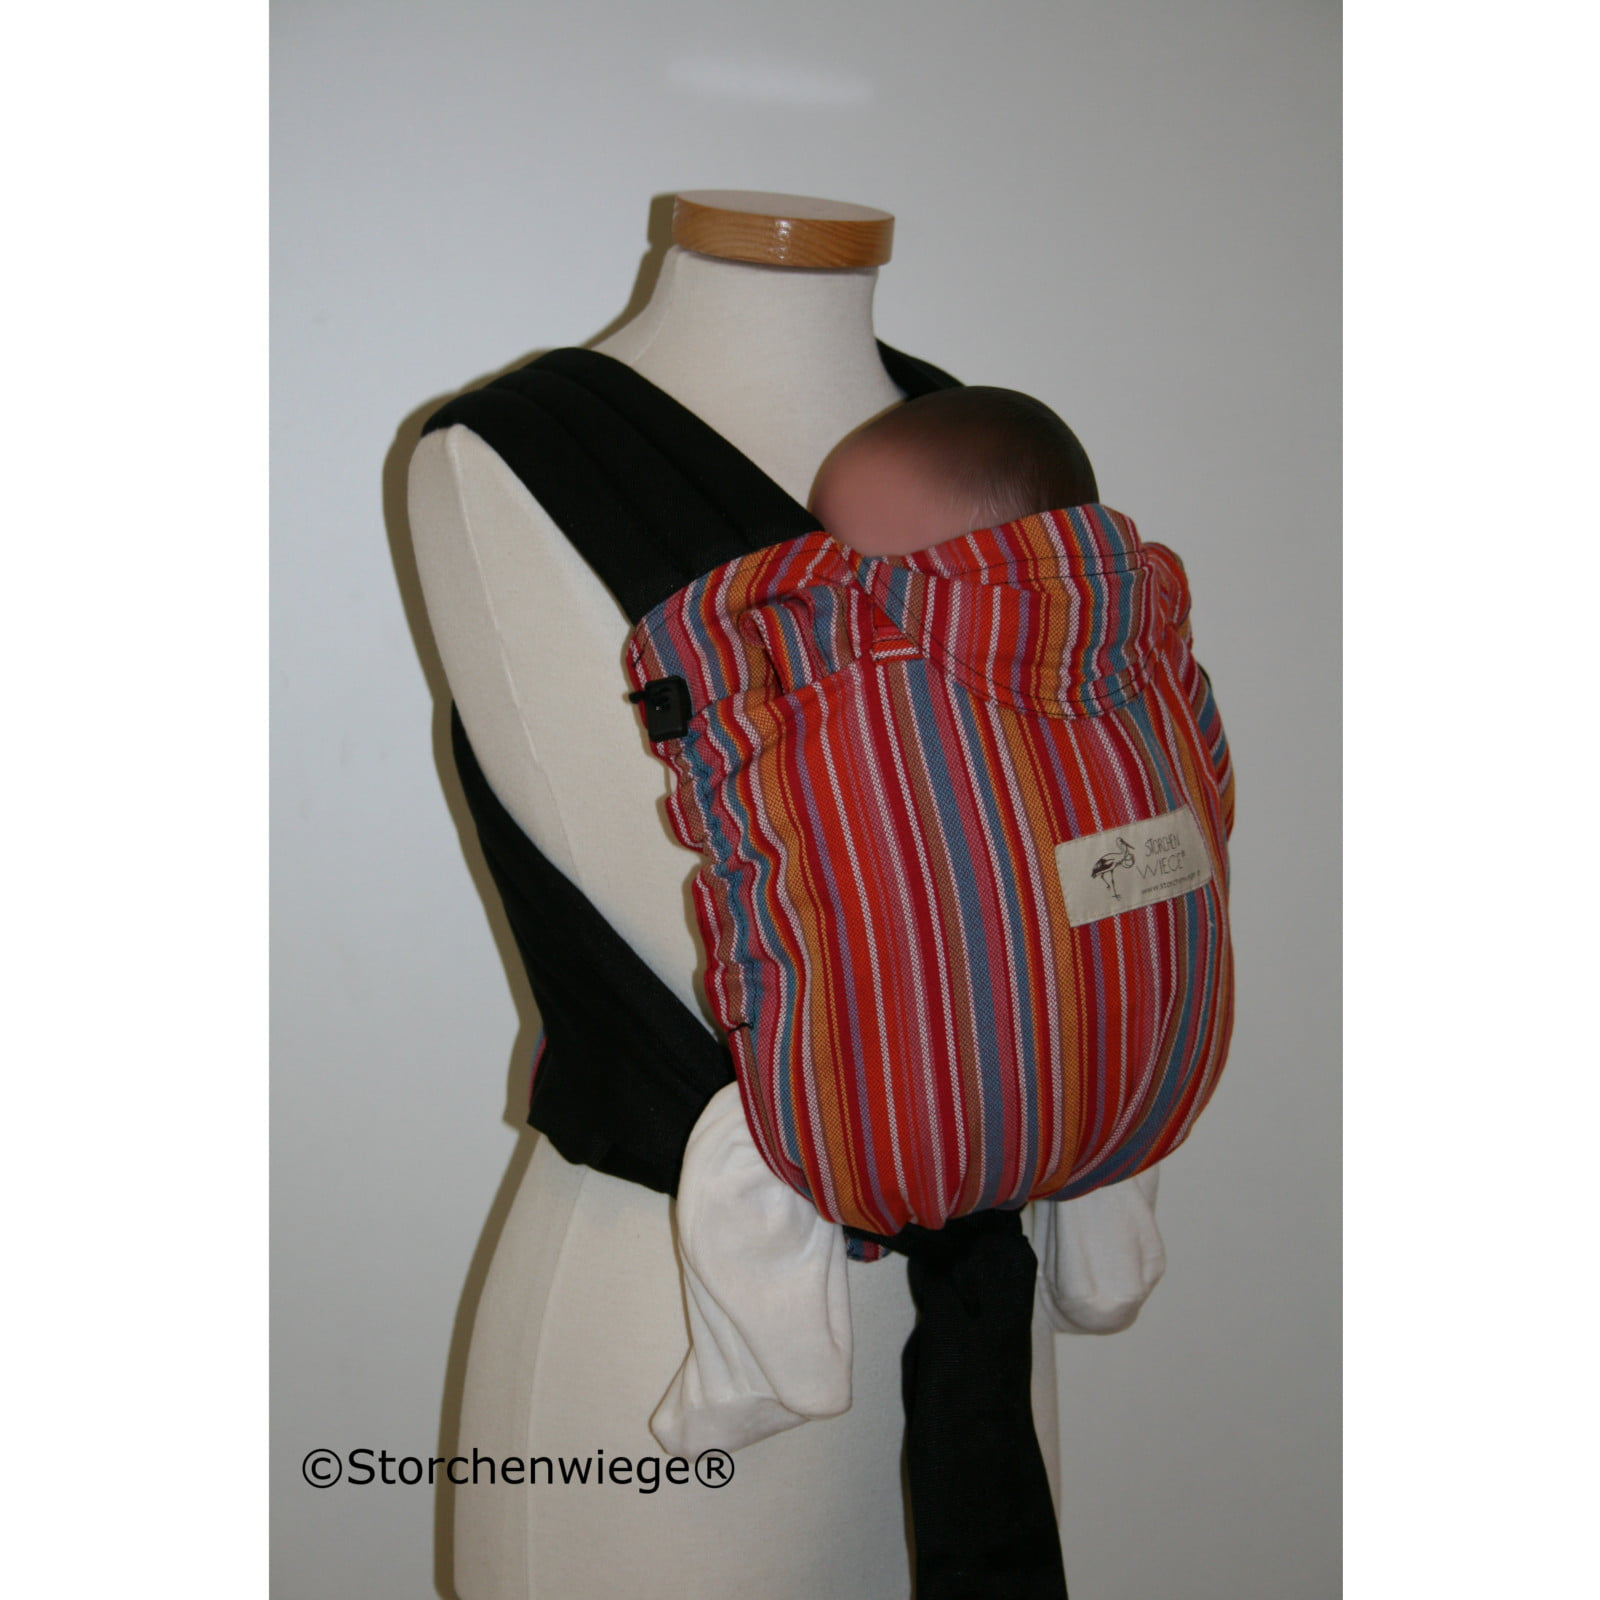 Storchenwiege BabyCarrier Lilly